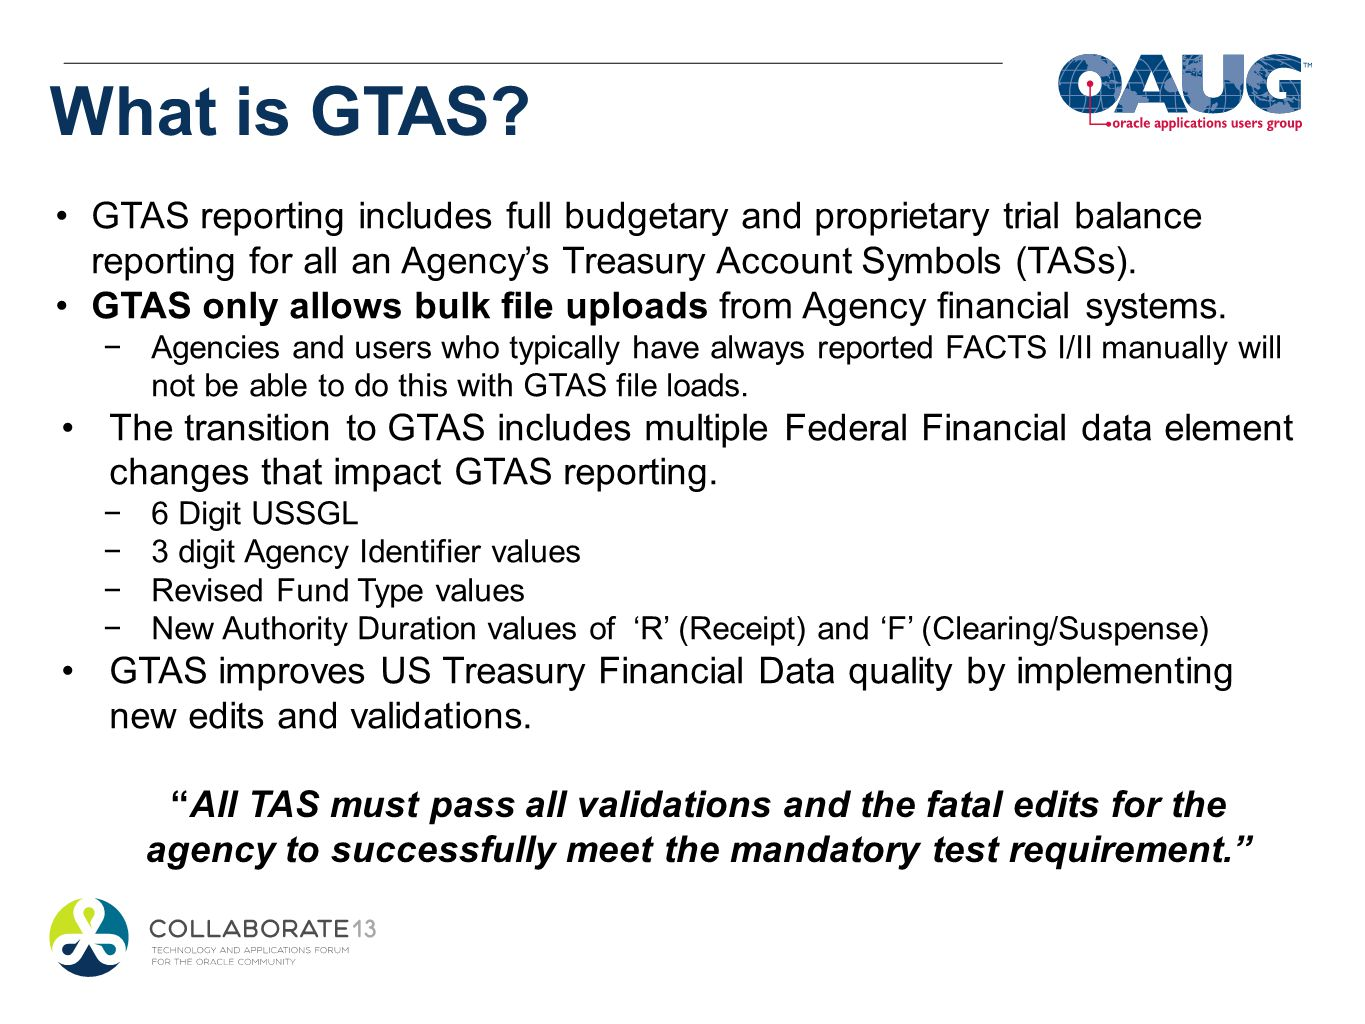 What is GTAS GTAS reporting includes full budgetary and proprietary trial balance reporting for all an Agency's Treasury Account Symbols (TASs).